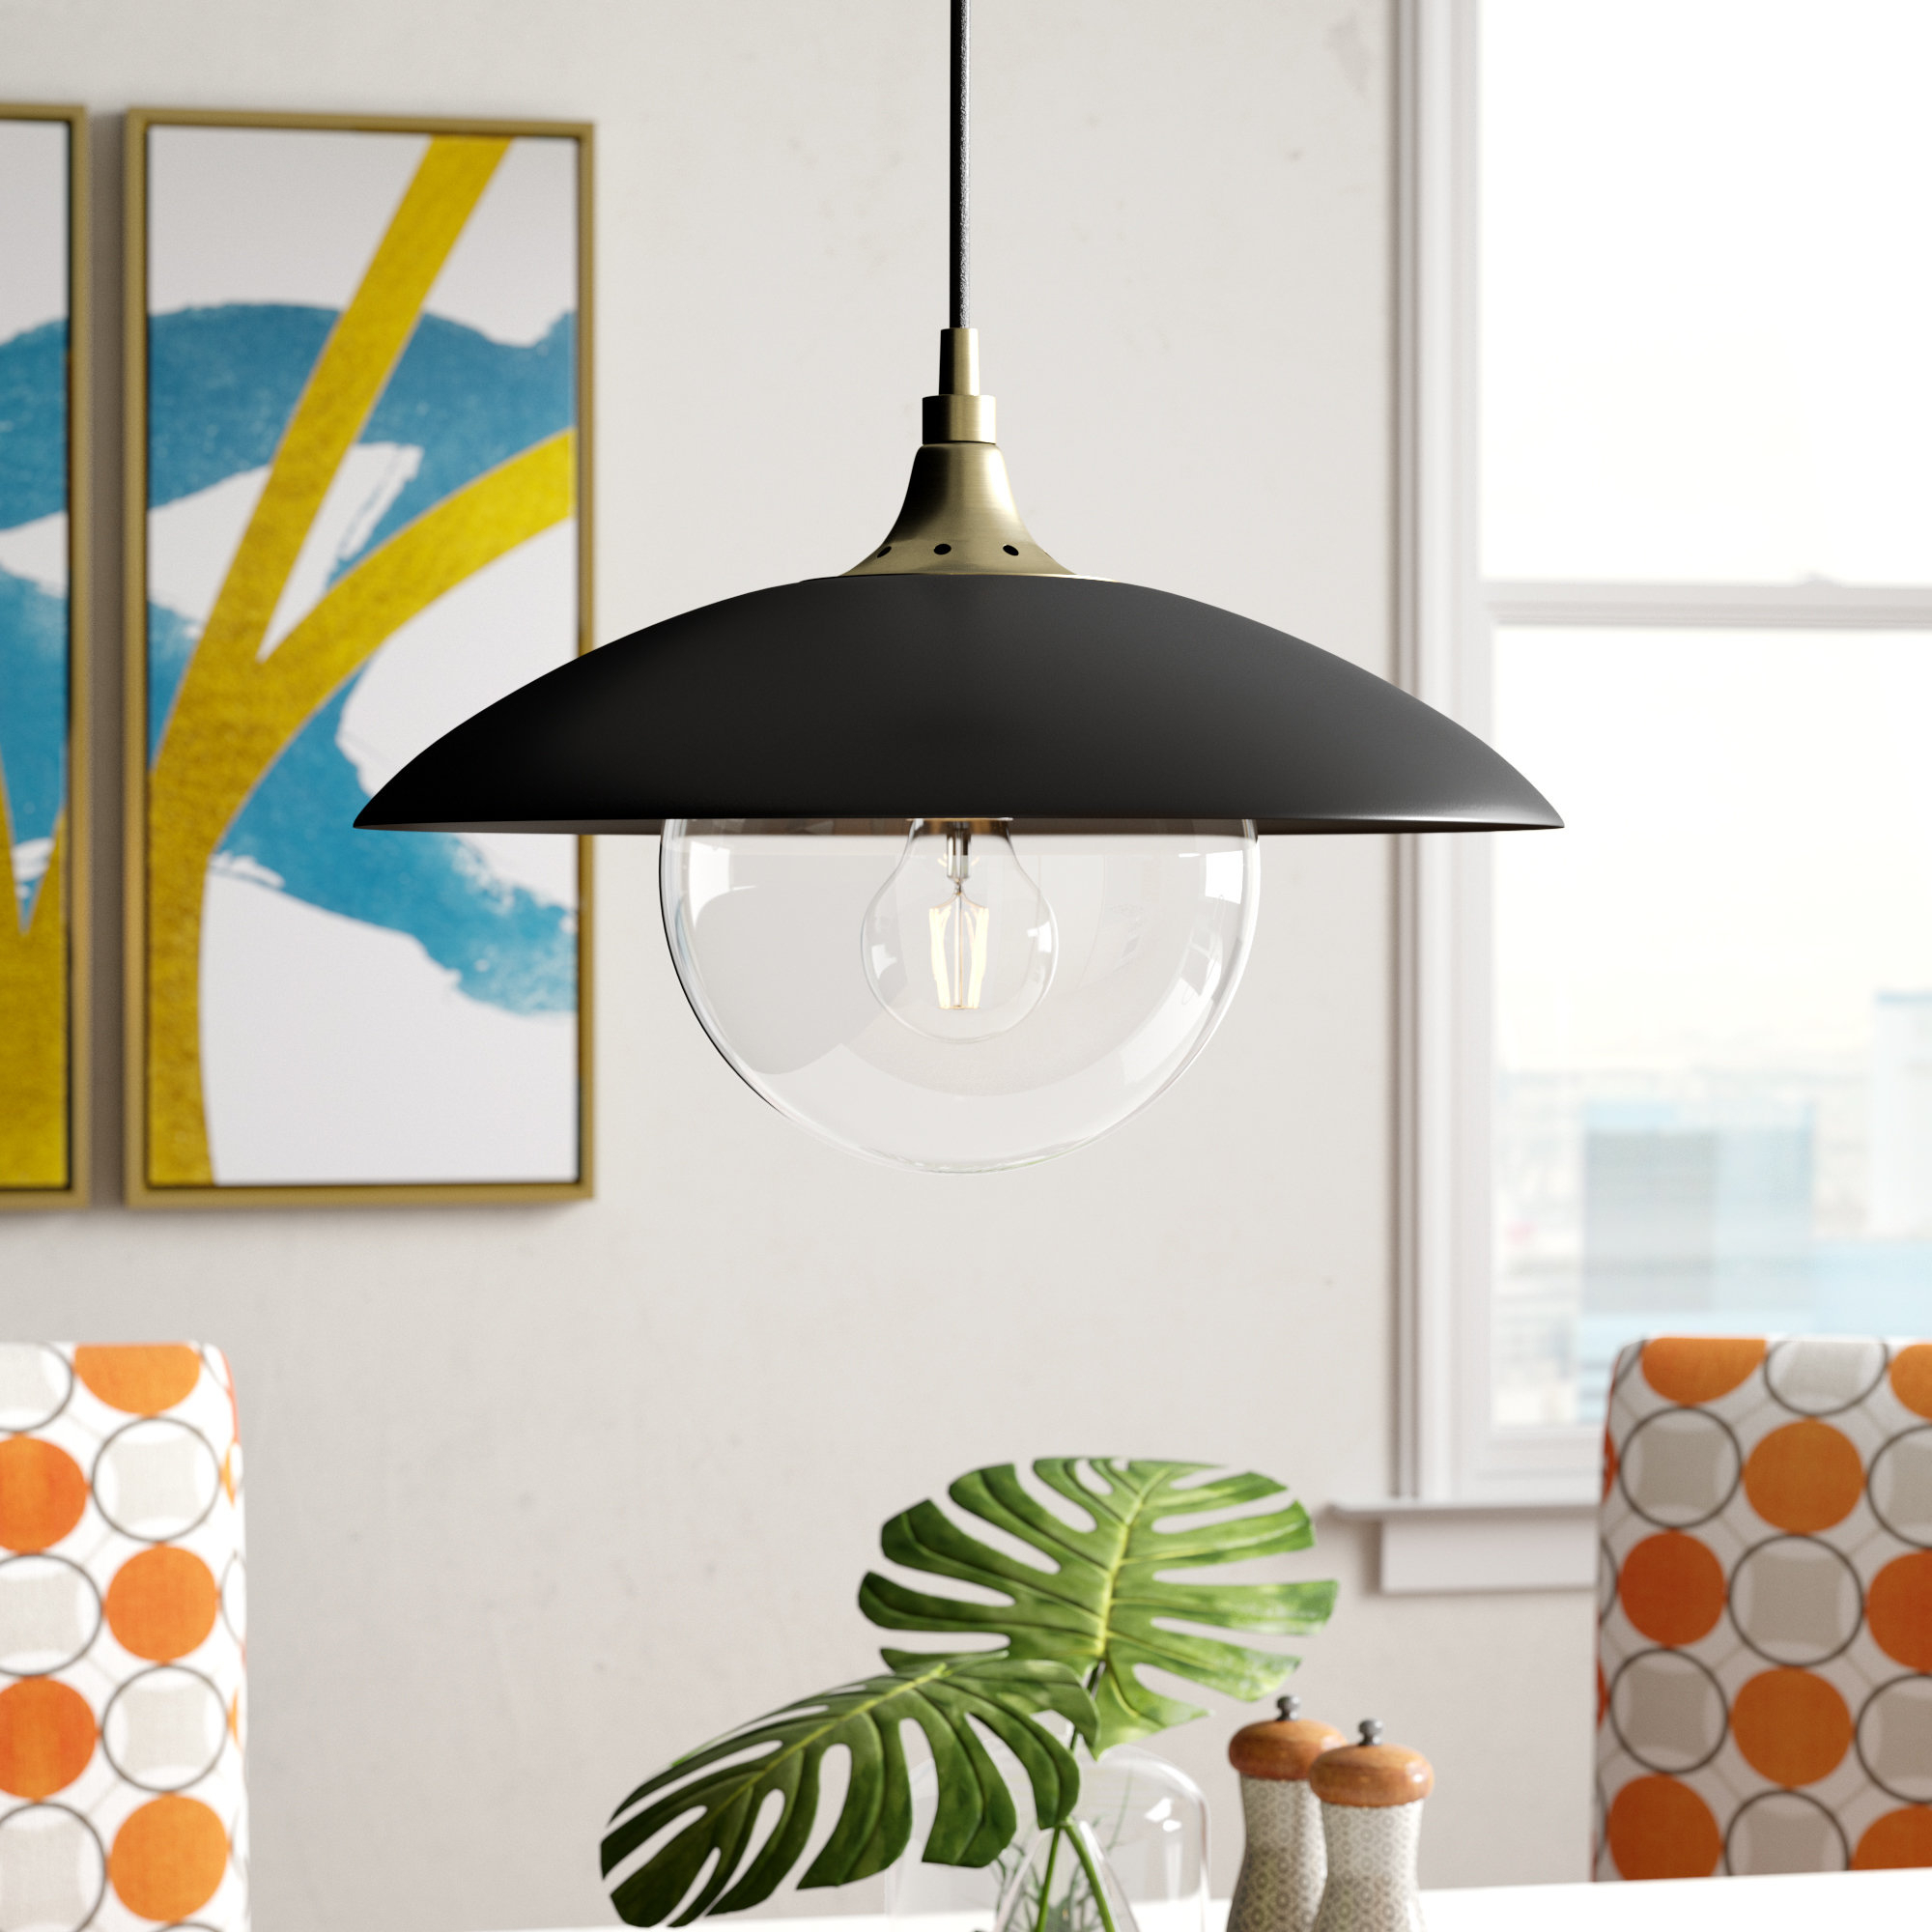 Famous Deveraux 1 Light Single Dome Pendant In Conover 1 Light Dome Pendants (View 9 of 25)